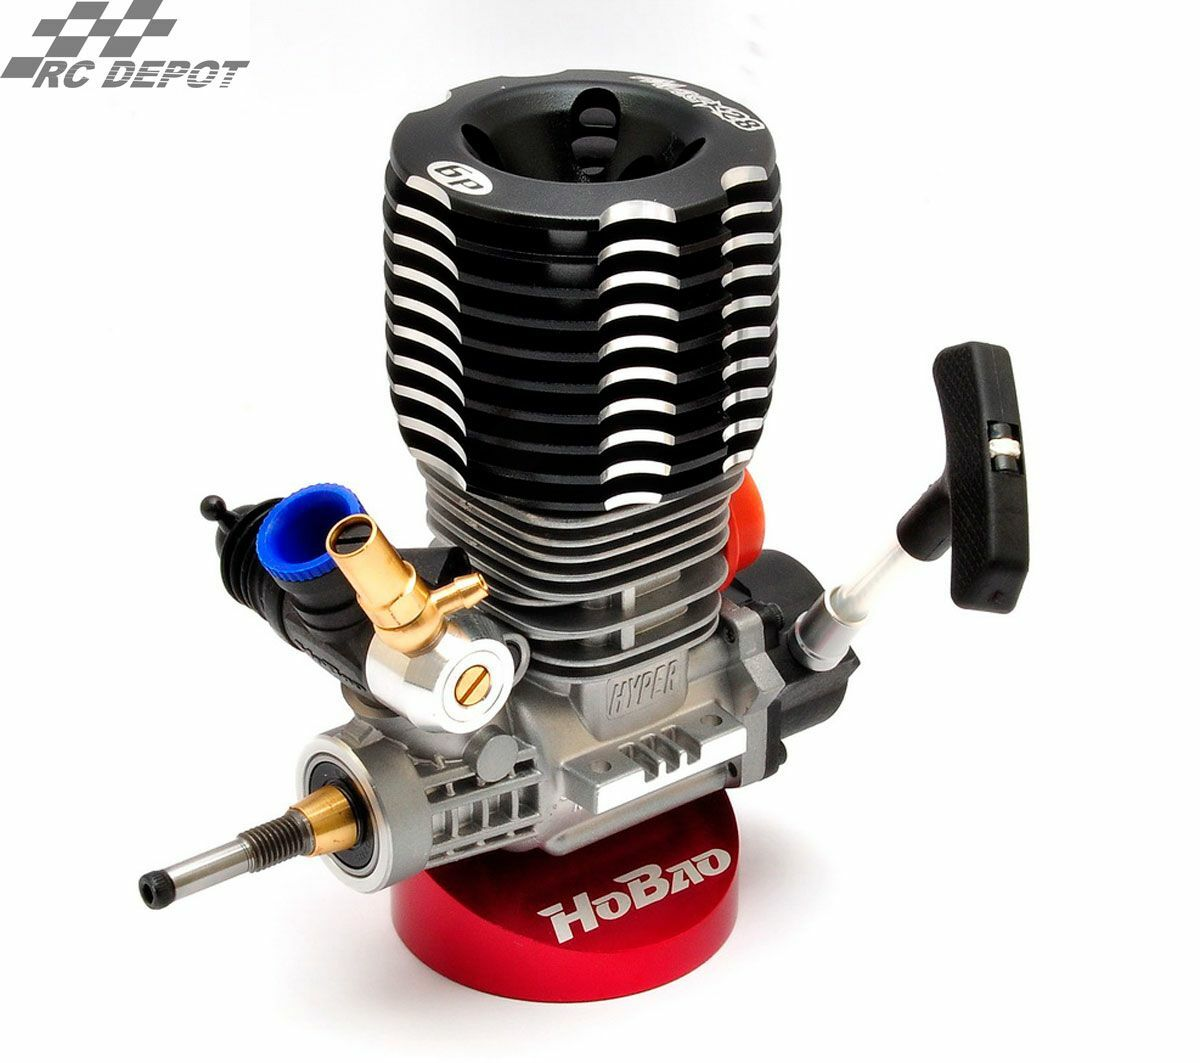 HOBAO OFNA 53220  H-2802T 6 Port Engine w  Pull Starter  (RC_DEPOT)  US SELLER